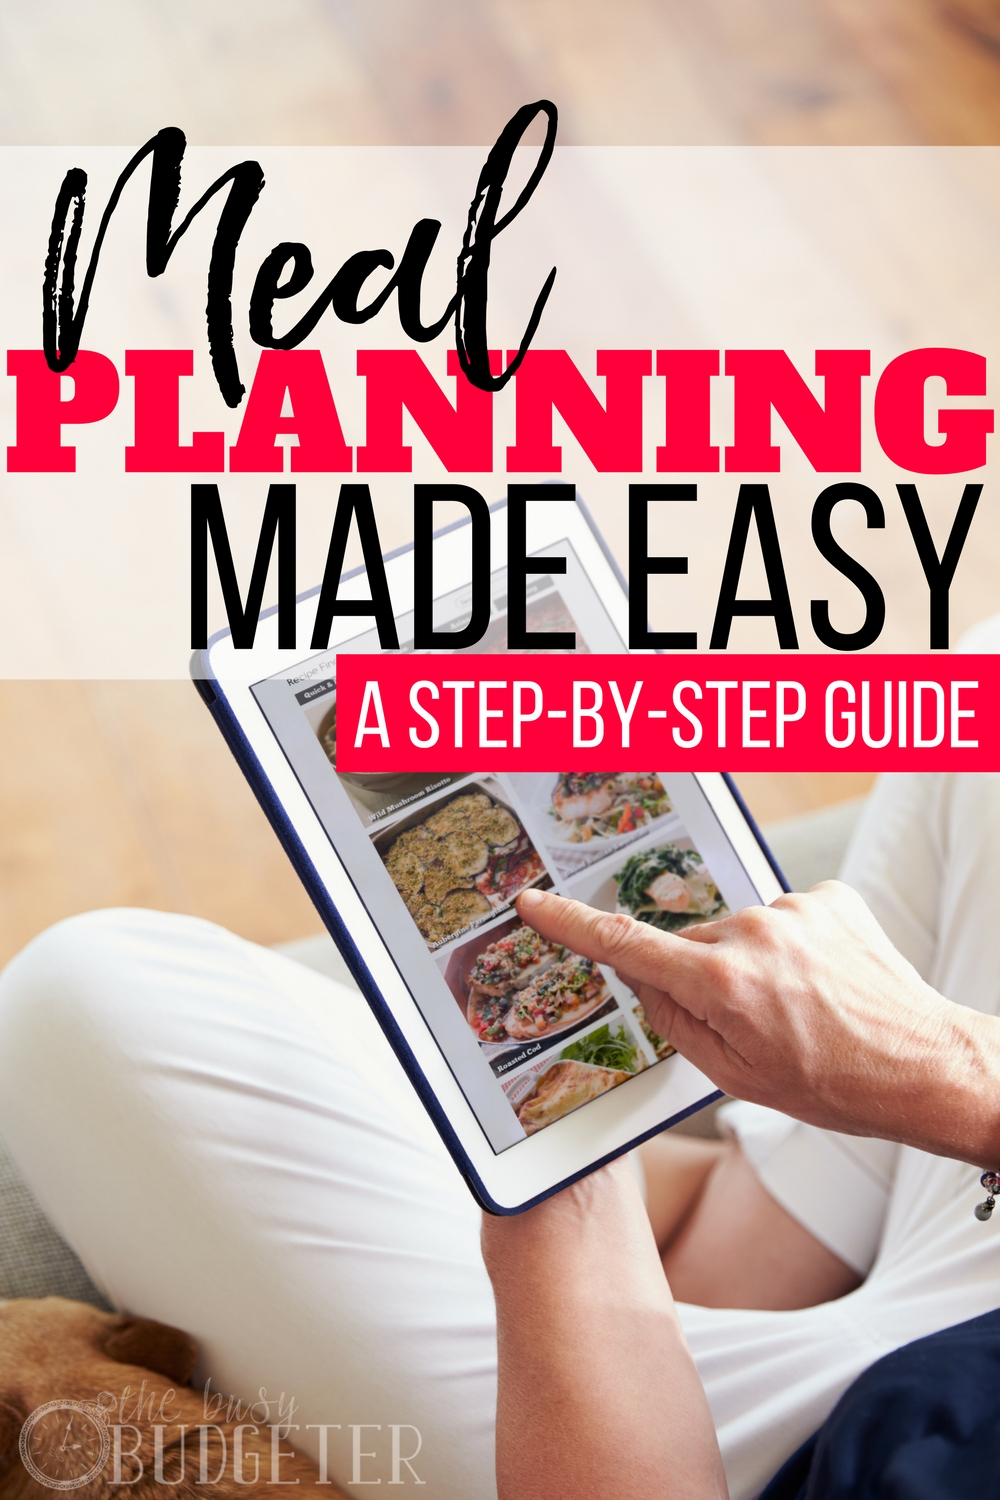 Budget friendly meal plans? WIN! These are awesome, I love anything that helps me be more organized when it comes to grocery shopping and cooking meals for my family. Awesome ideas for making meal planning easy, great read!